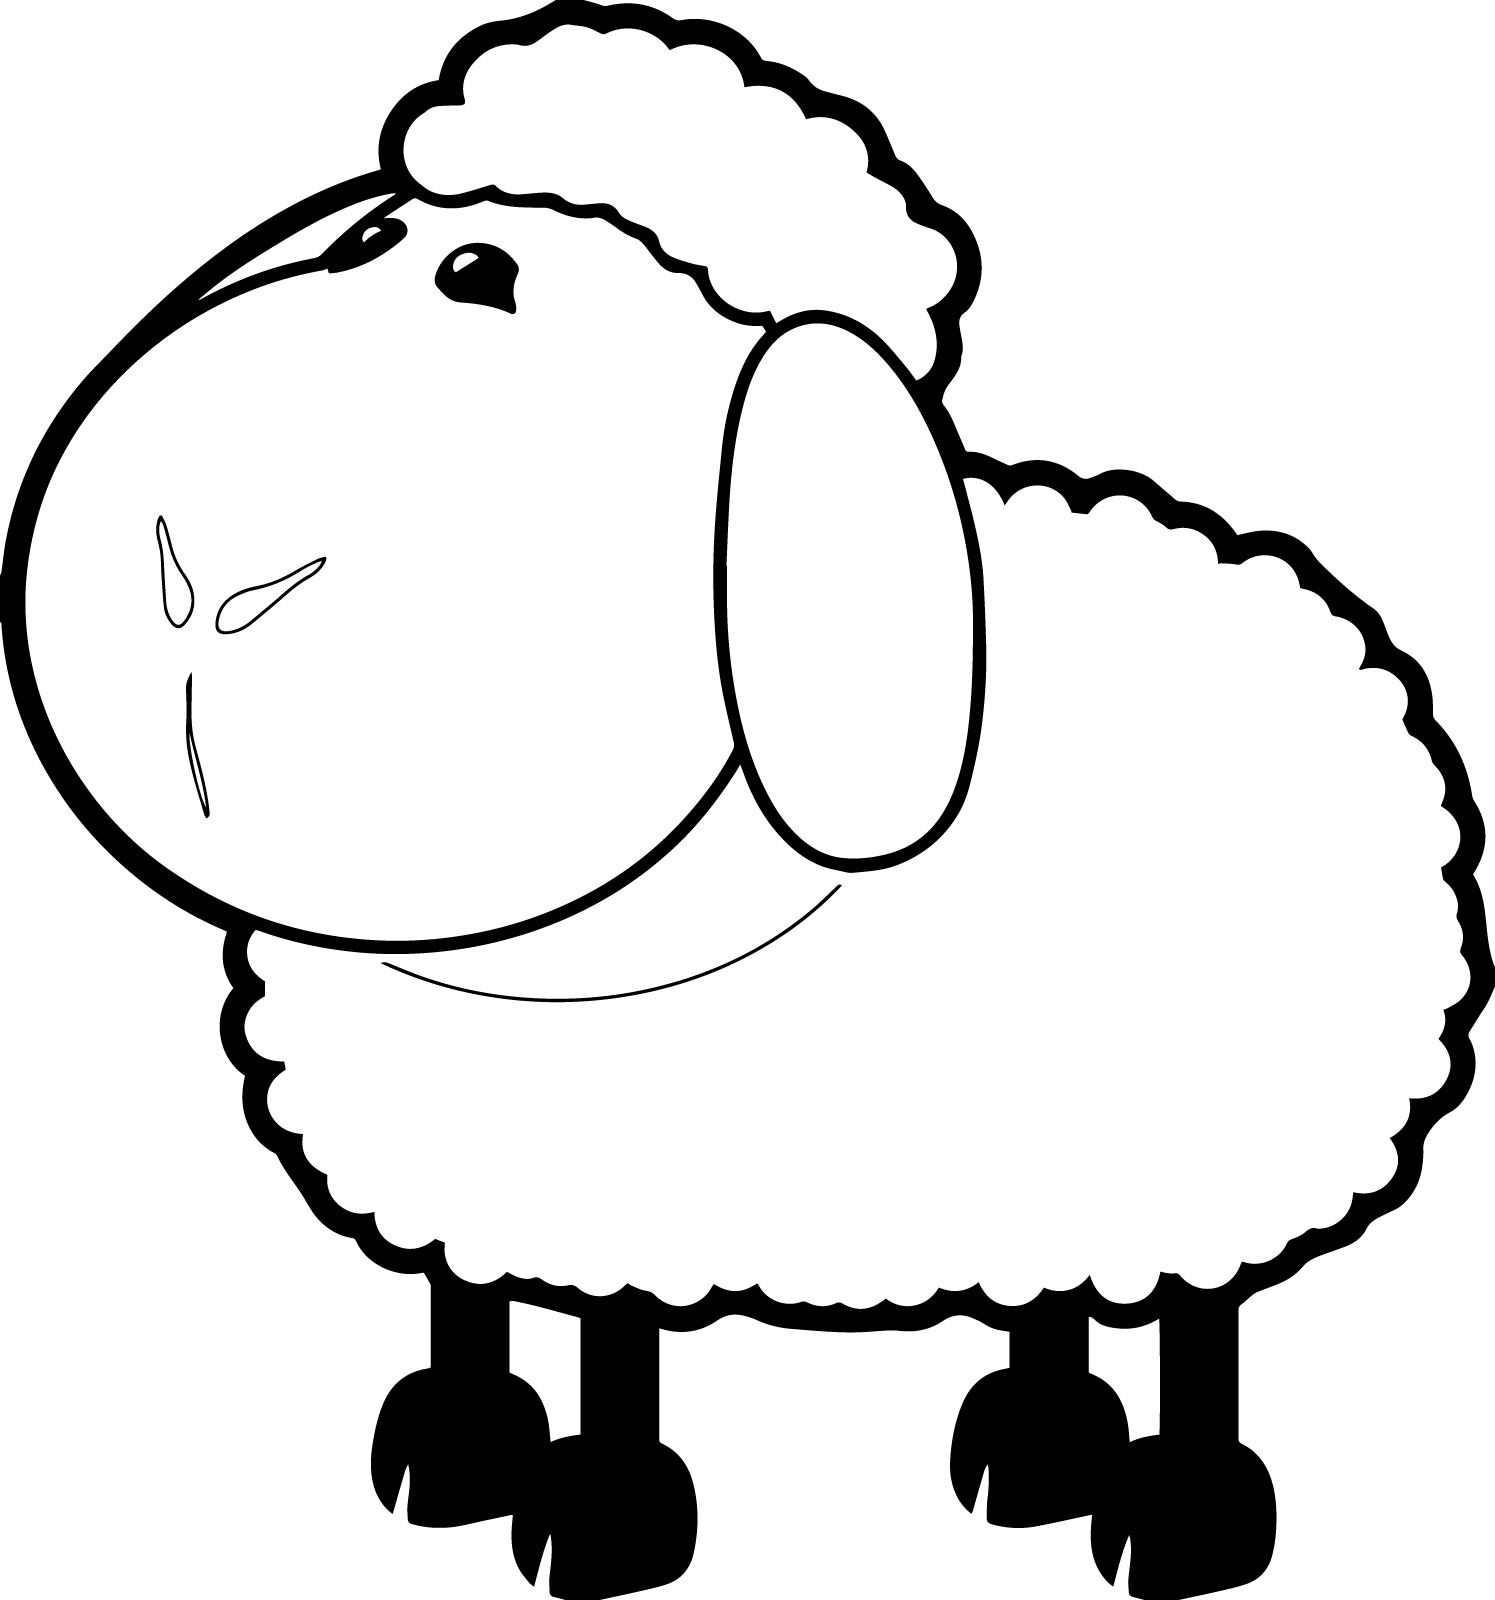 25 Funny Sheep Coloring Pages Your Toddler Will Love Elephant